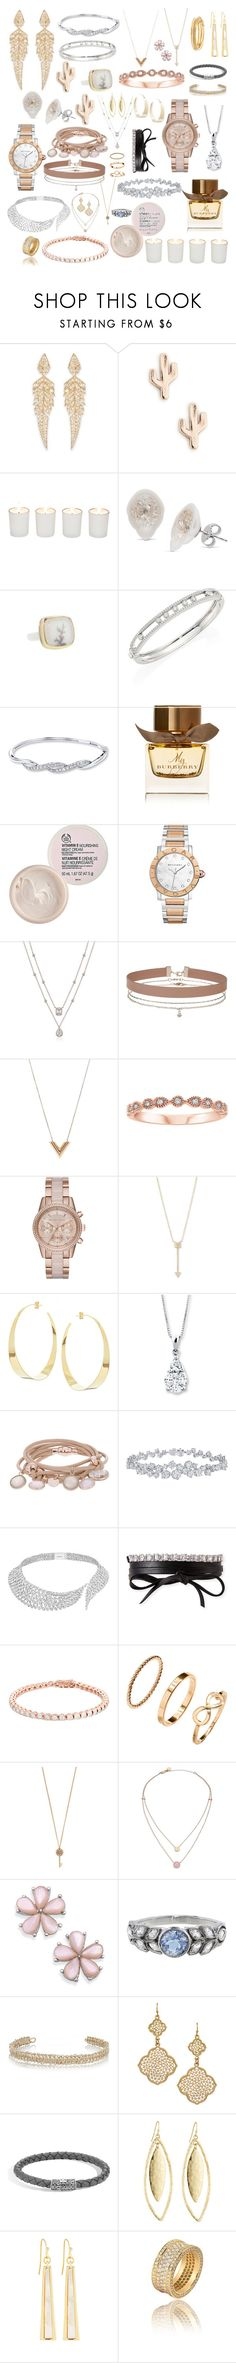 """""""Favorites"""" by brittcmidfielder ❤ liked on Polyvore featuring Stephen Webster, Sole Society, Witchery, Jamie Joseph, Messika, Burberry, The Body Shop, Bulgari, Miss Selfridge and Louis Vuitton"""